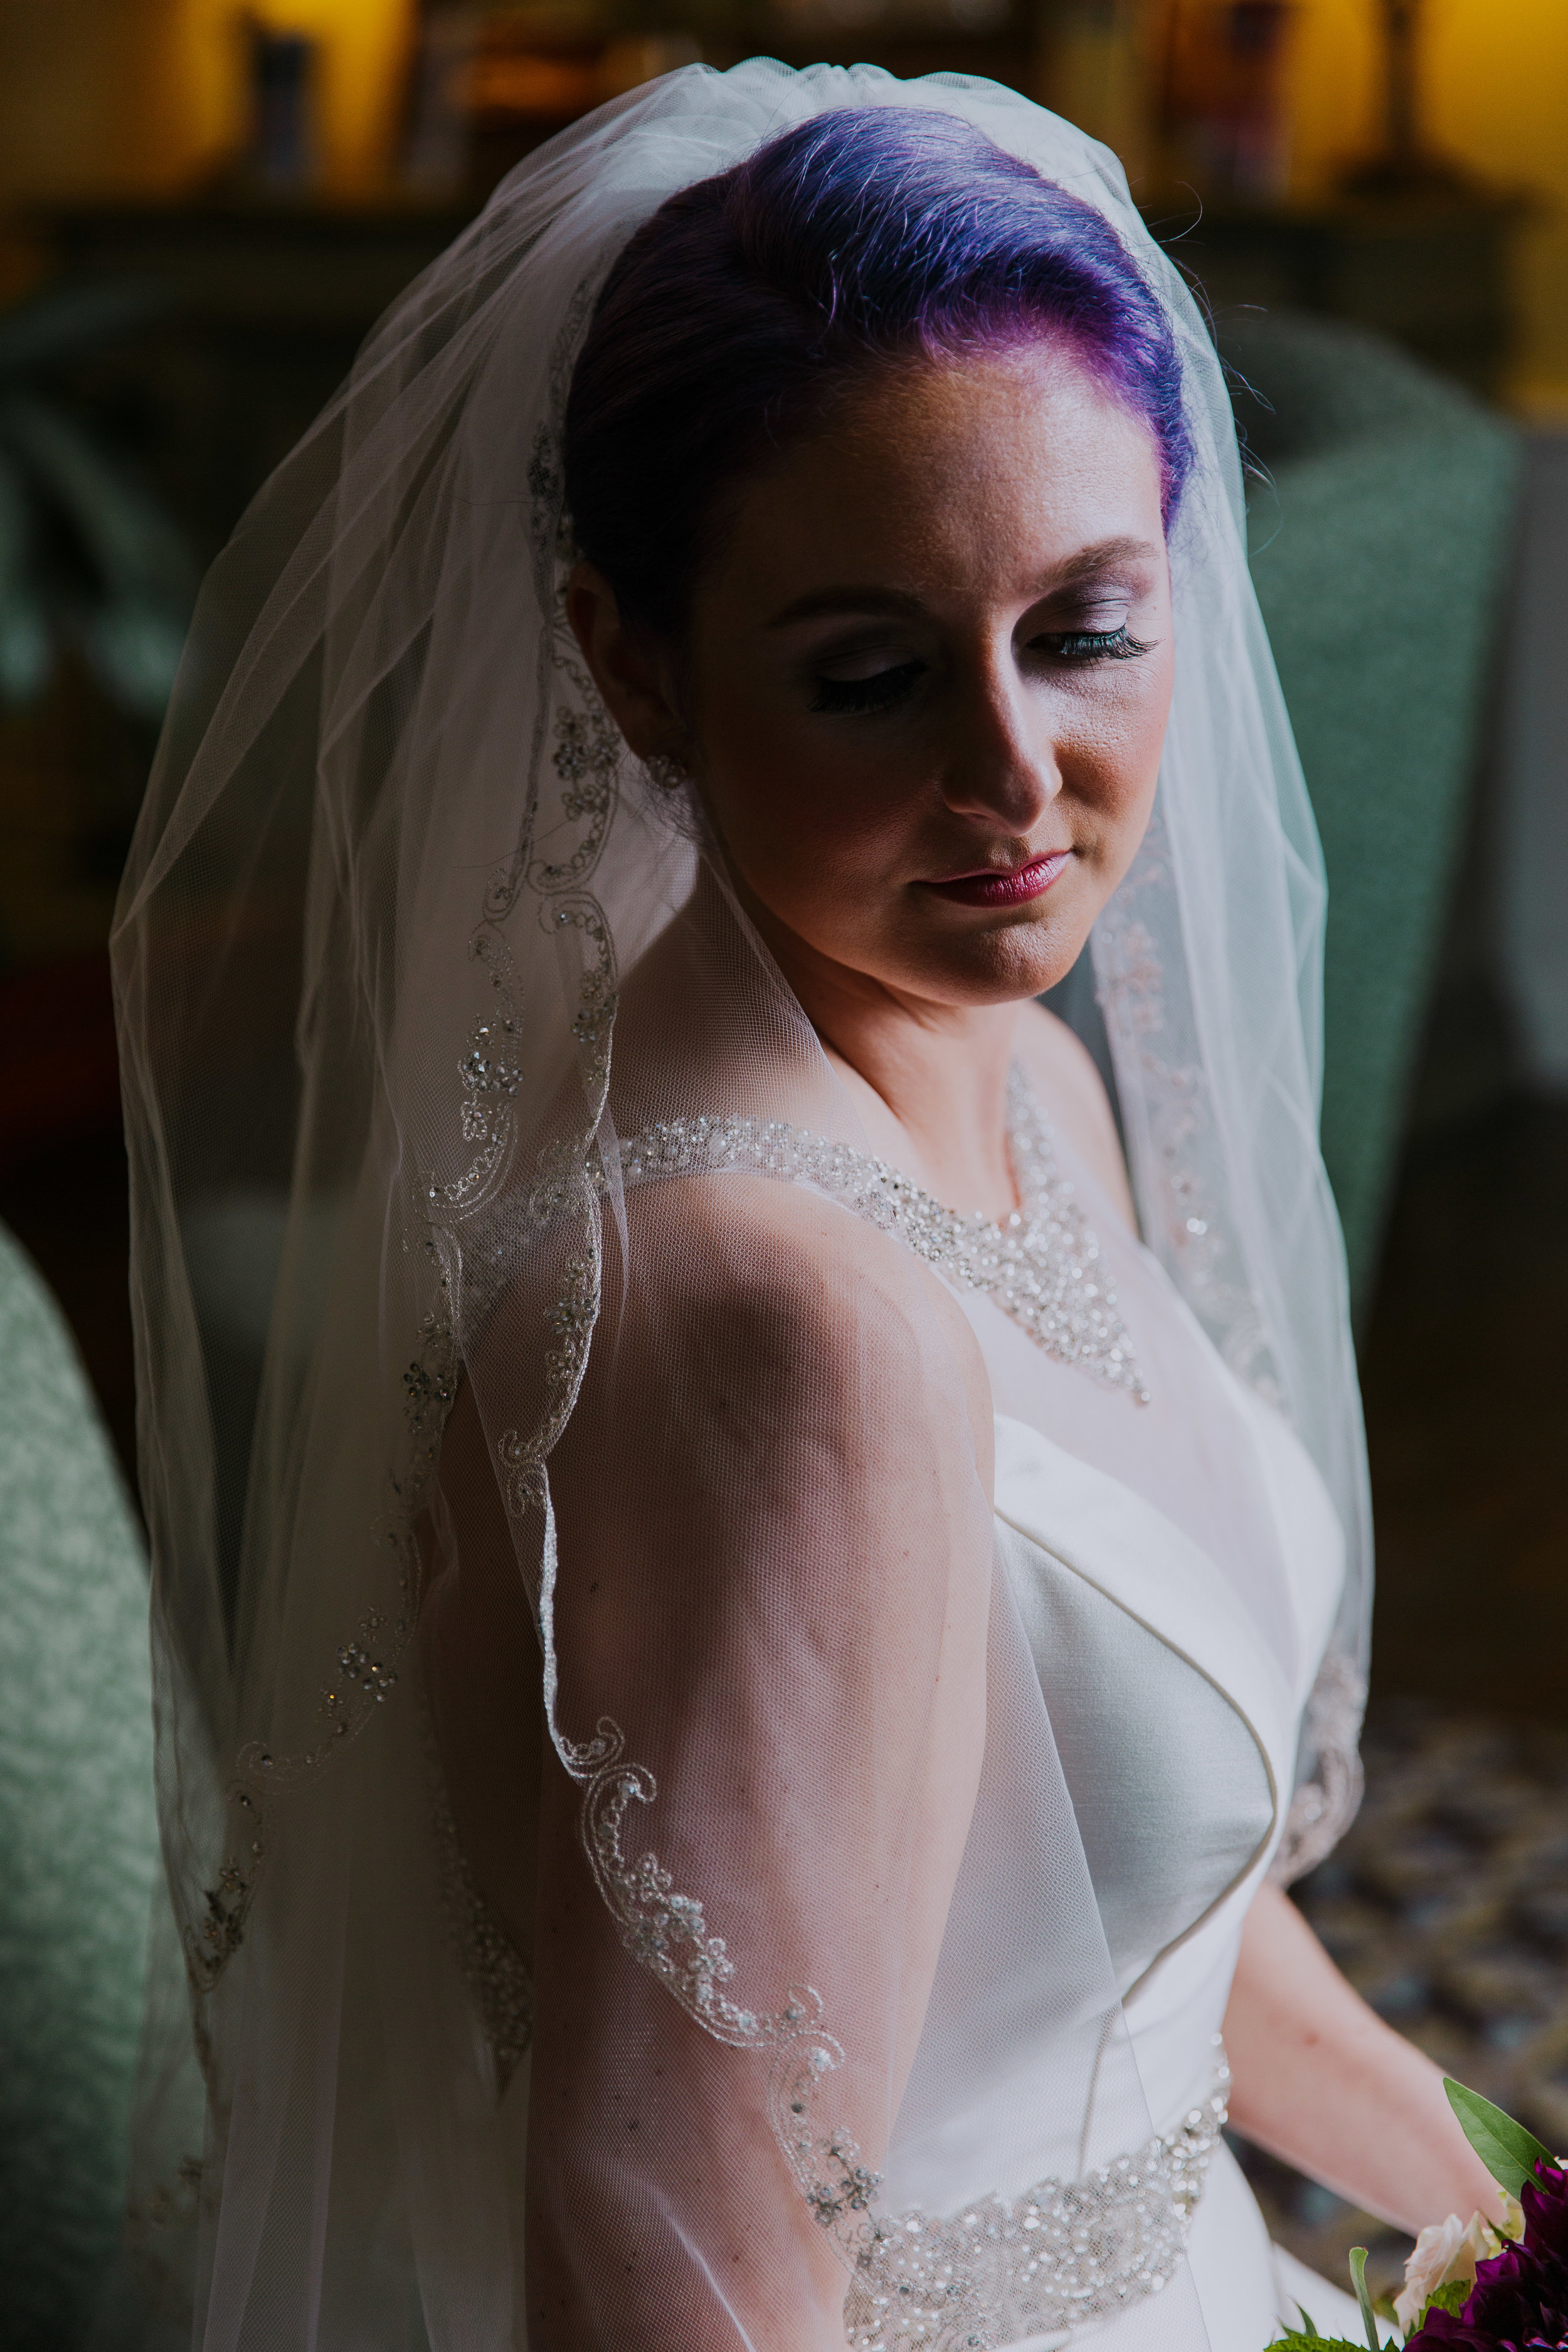 AmandaJoe_Wedding_Portraits-29.jpg